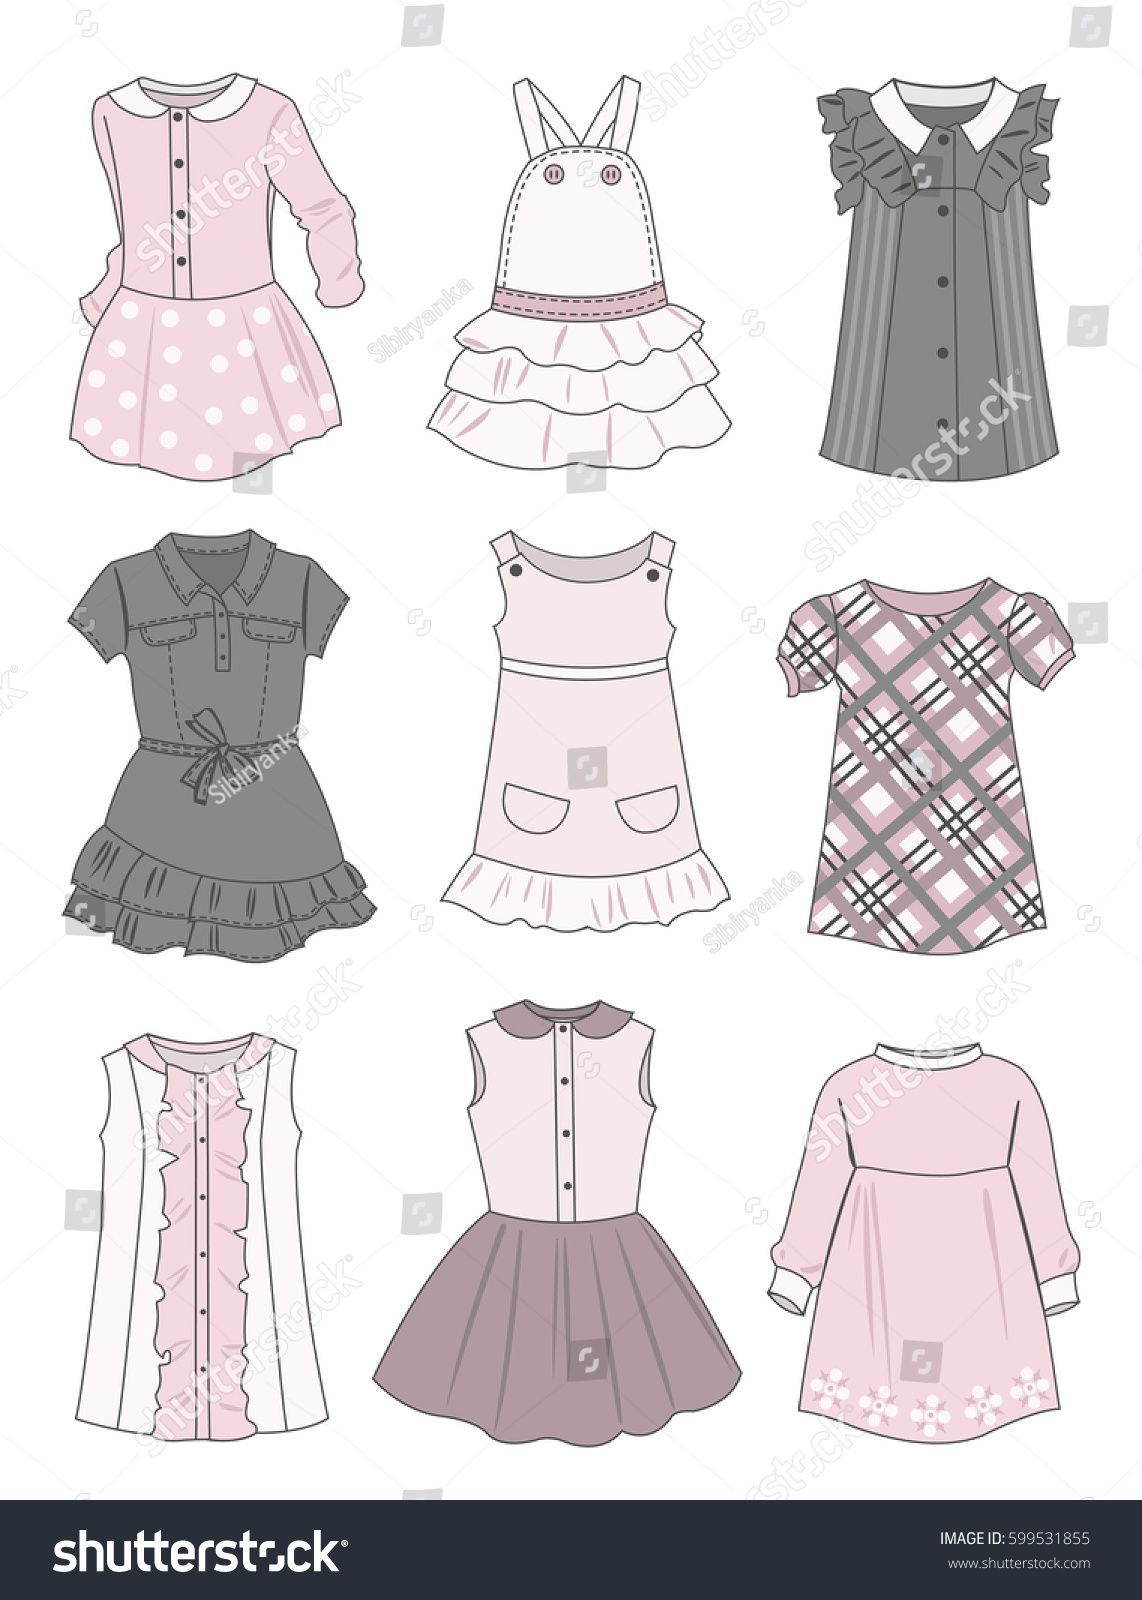 Drawing Clothes Girl Dresses Drawingbook Drawingpractice